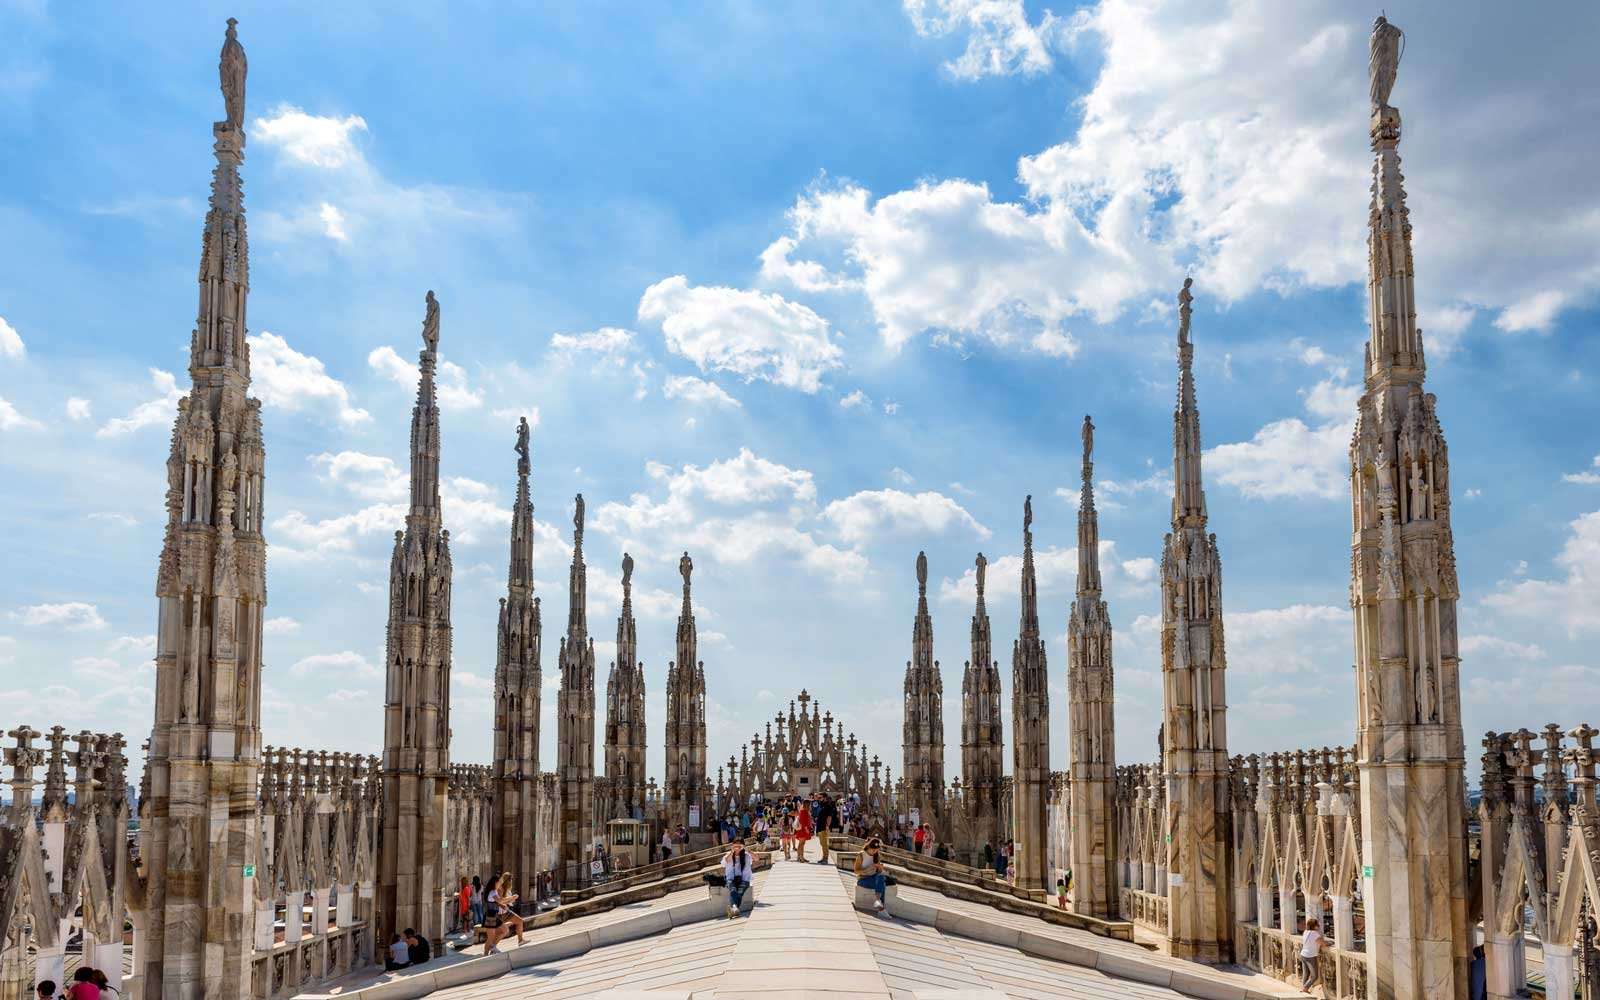 Tourists visit the roof of the Milan Cathedral (Duomo di Milano).